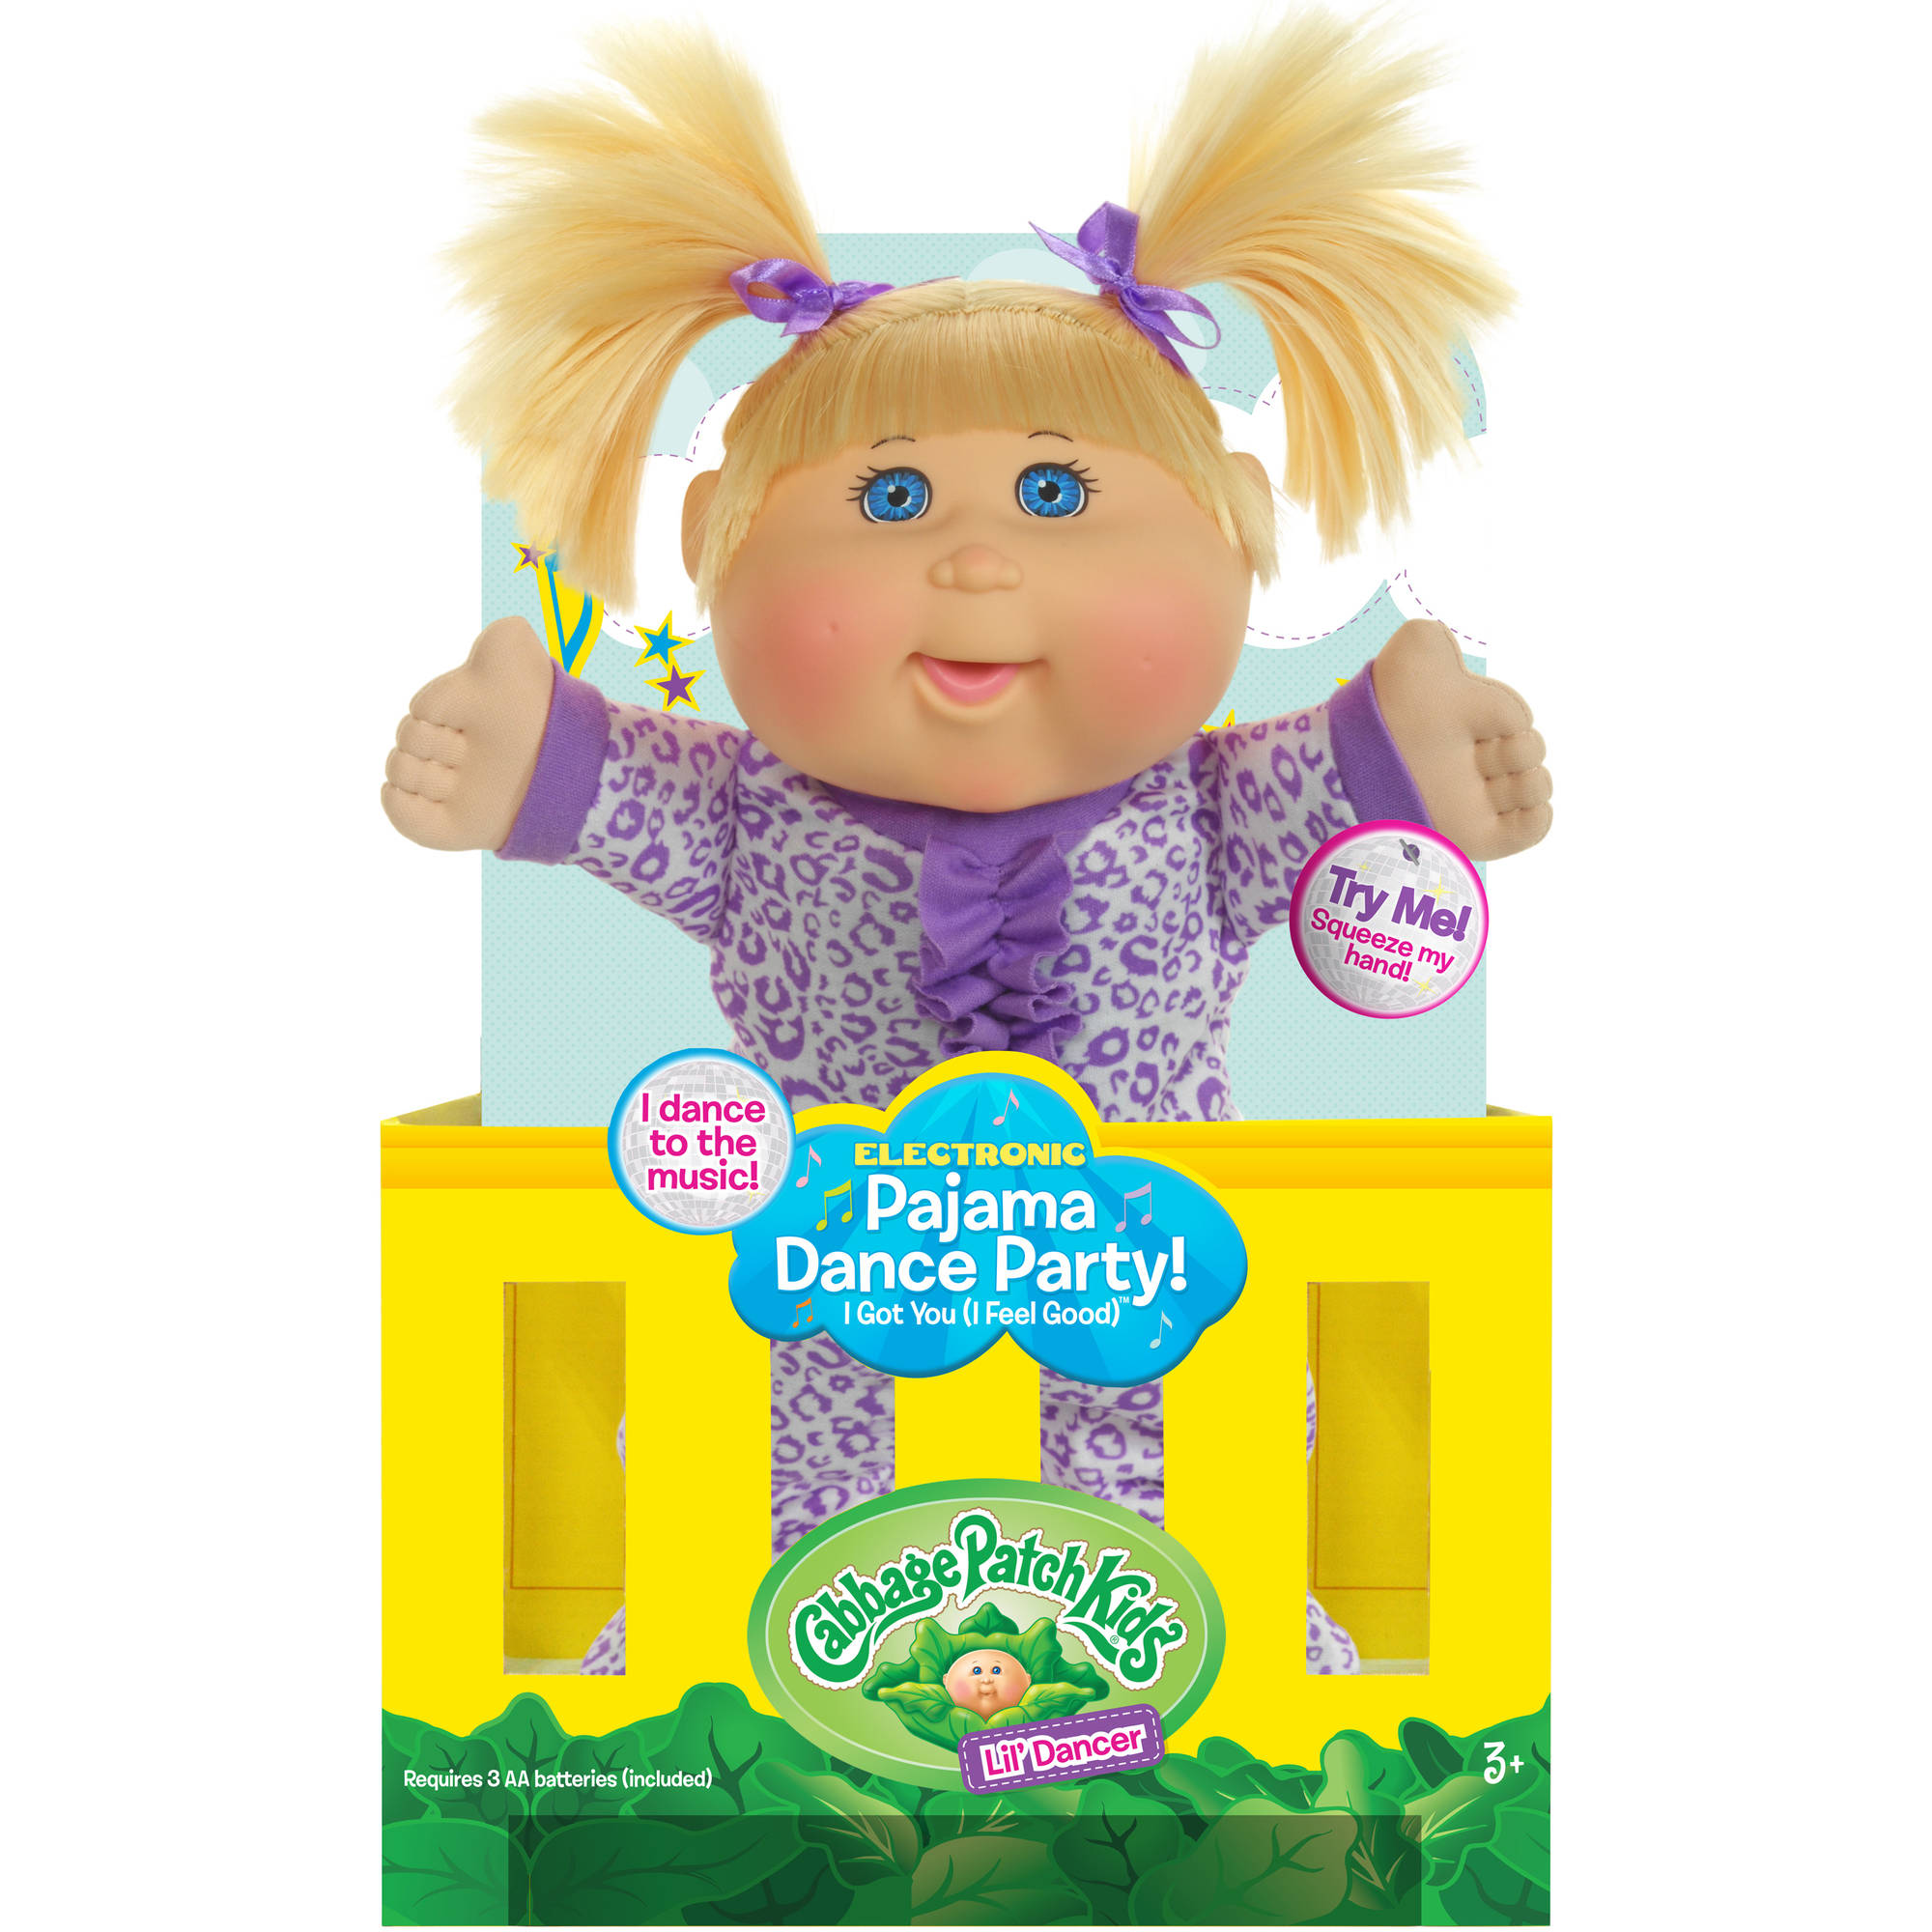 Cabbage Patch Kids Pajama Dance Party Doll, Blonde Hair Blue Eye Girl by Wicked Cool Toys